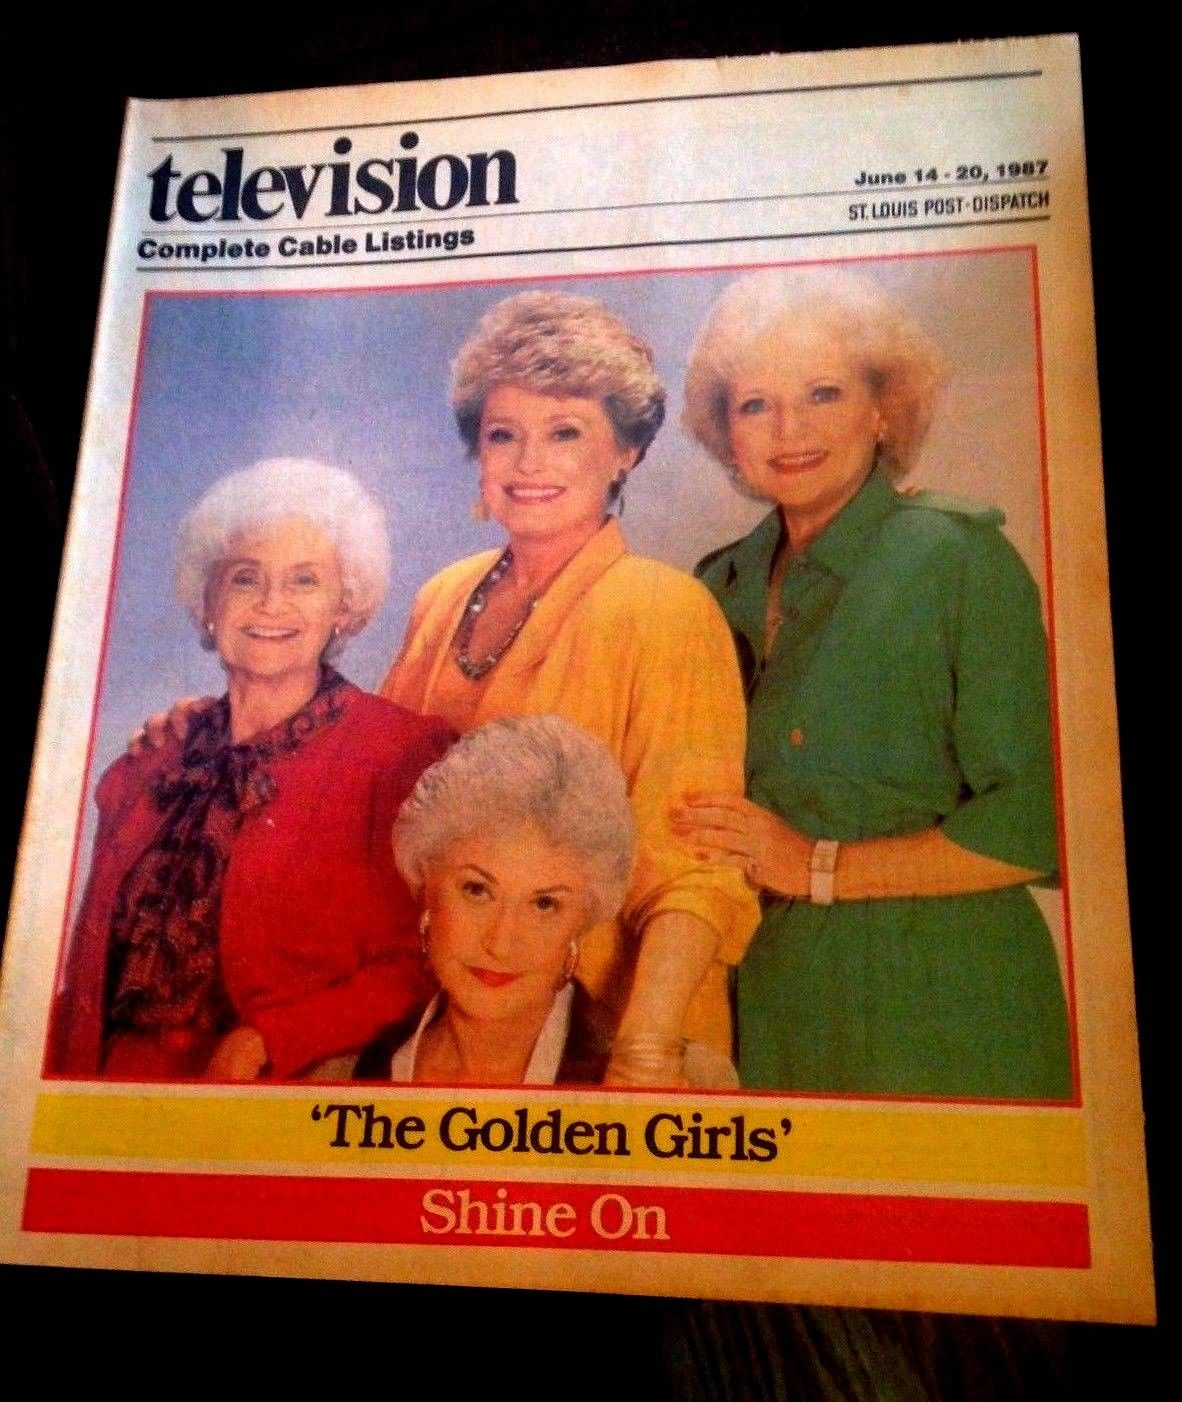 TV_GUIDE_THE_GOLDEN_GIRLS_SHINE_ON_6-14-87_ST_LOUIS_NEWSPAPER_RARE_NM